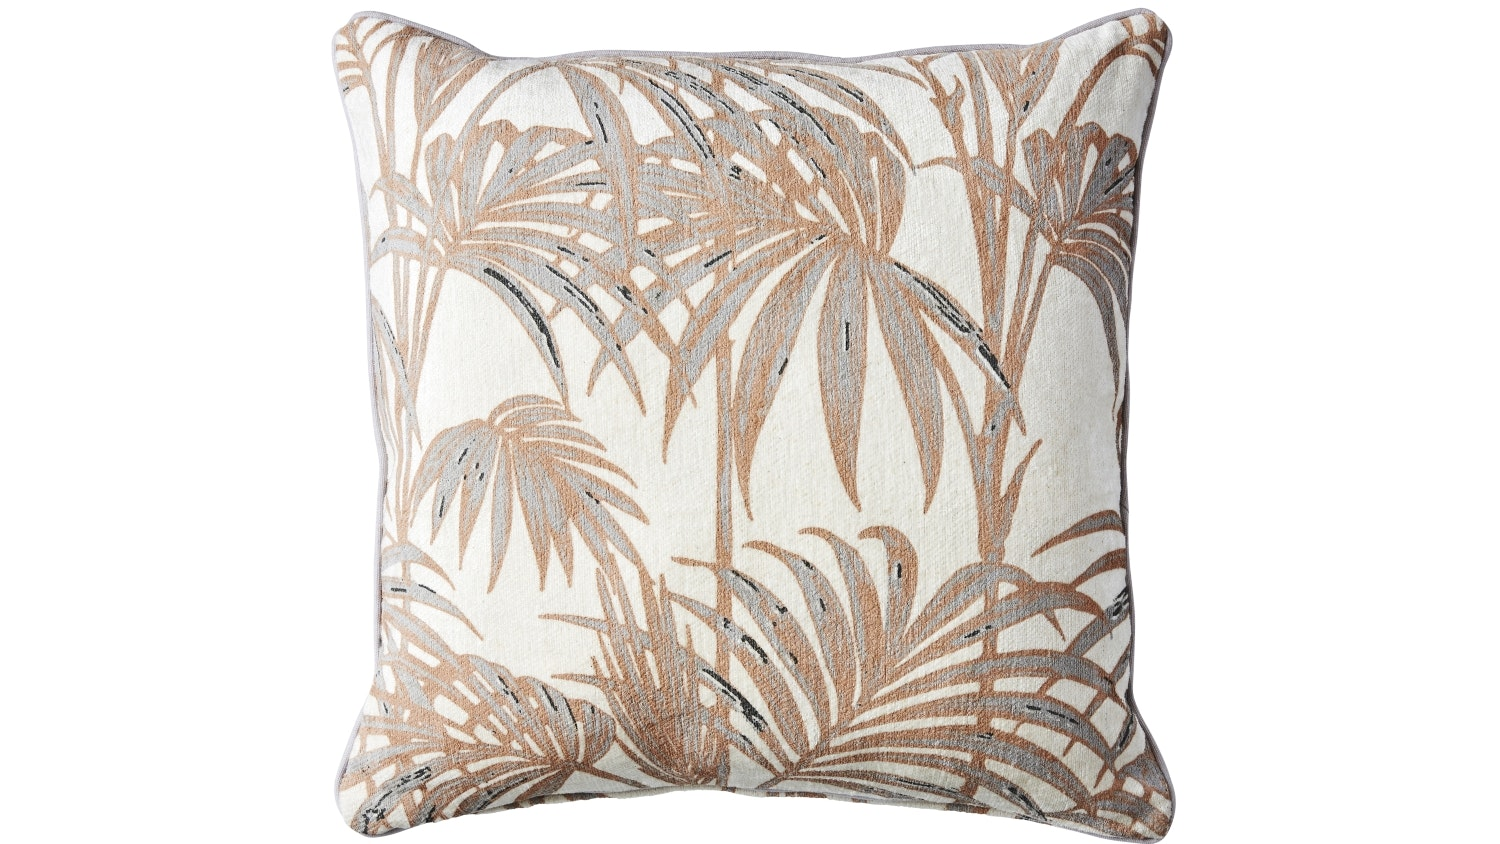 Havana Cushion - Sepia/Dove